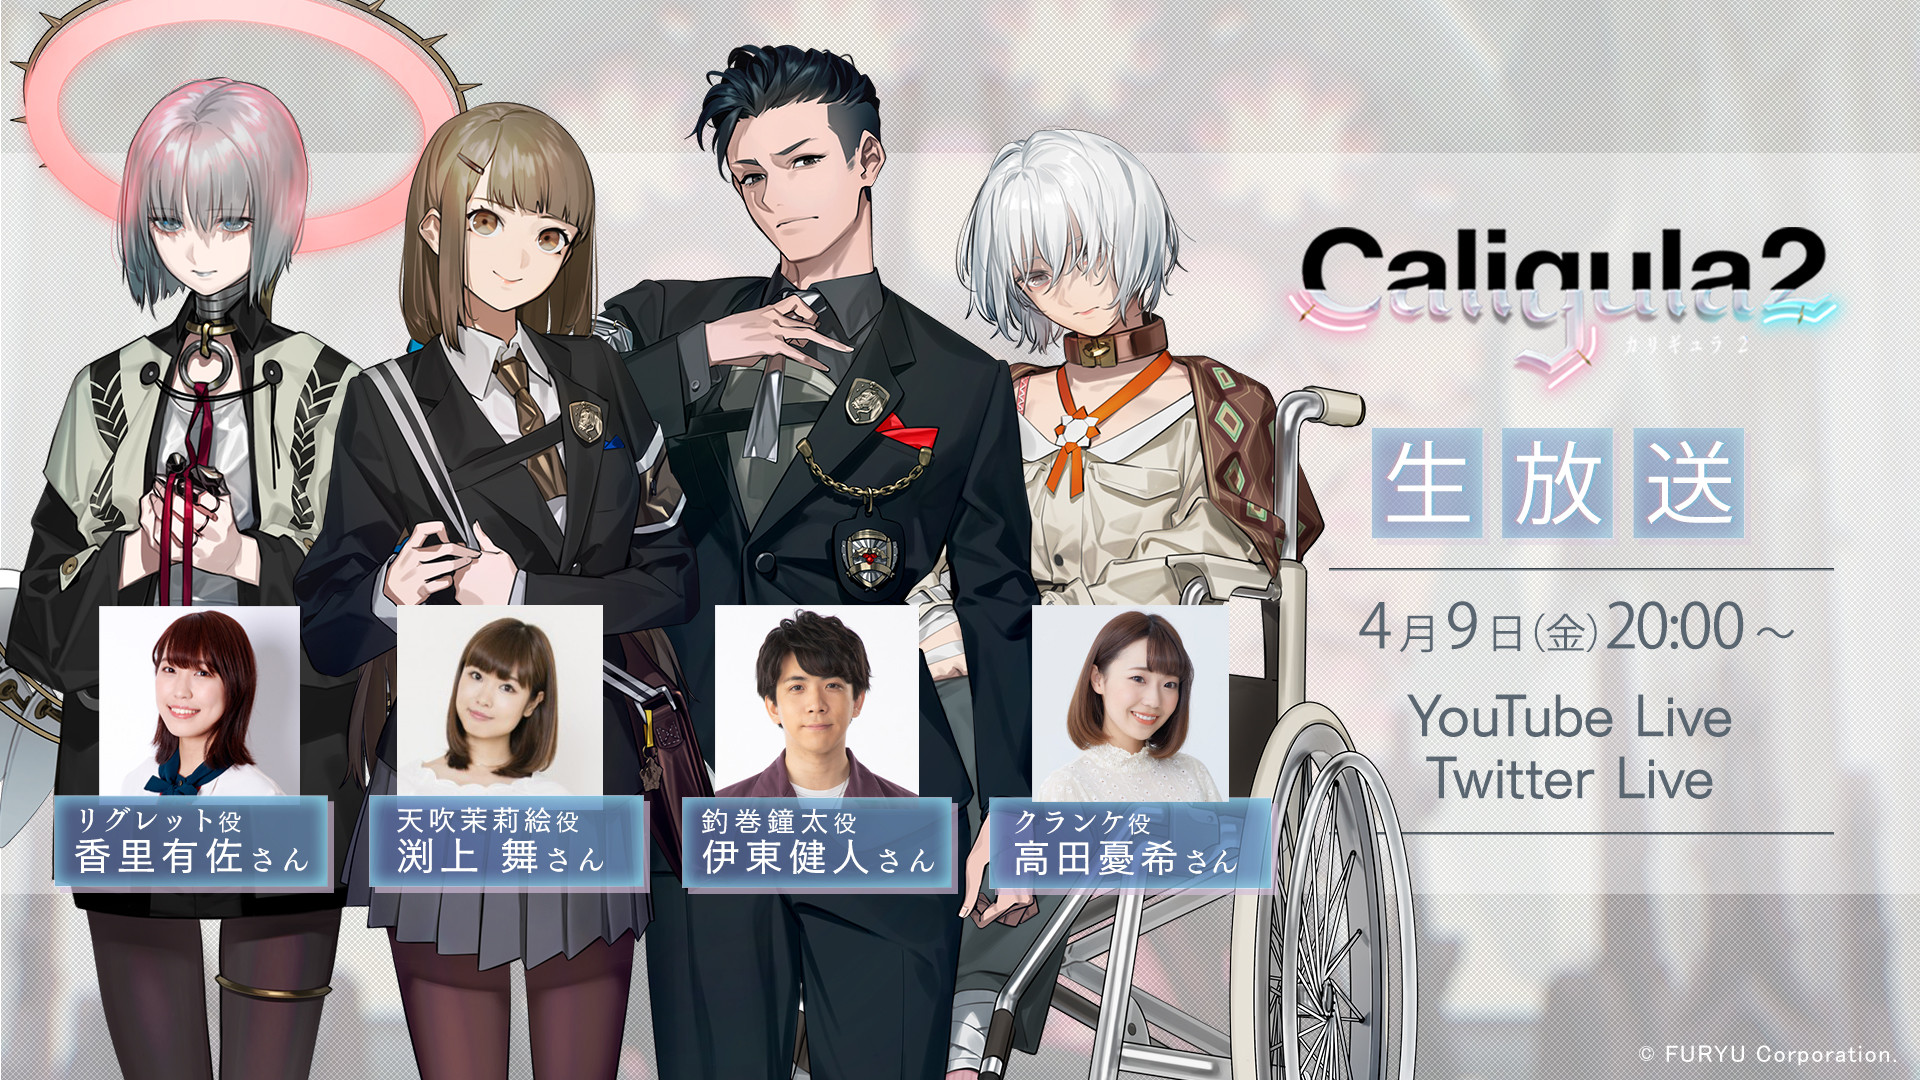 The Caligula Effect 2 live stream promo image featuring the game's cast.